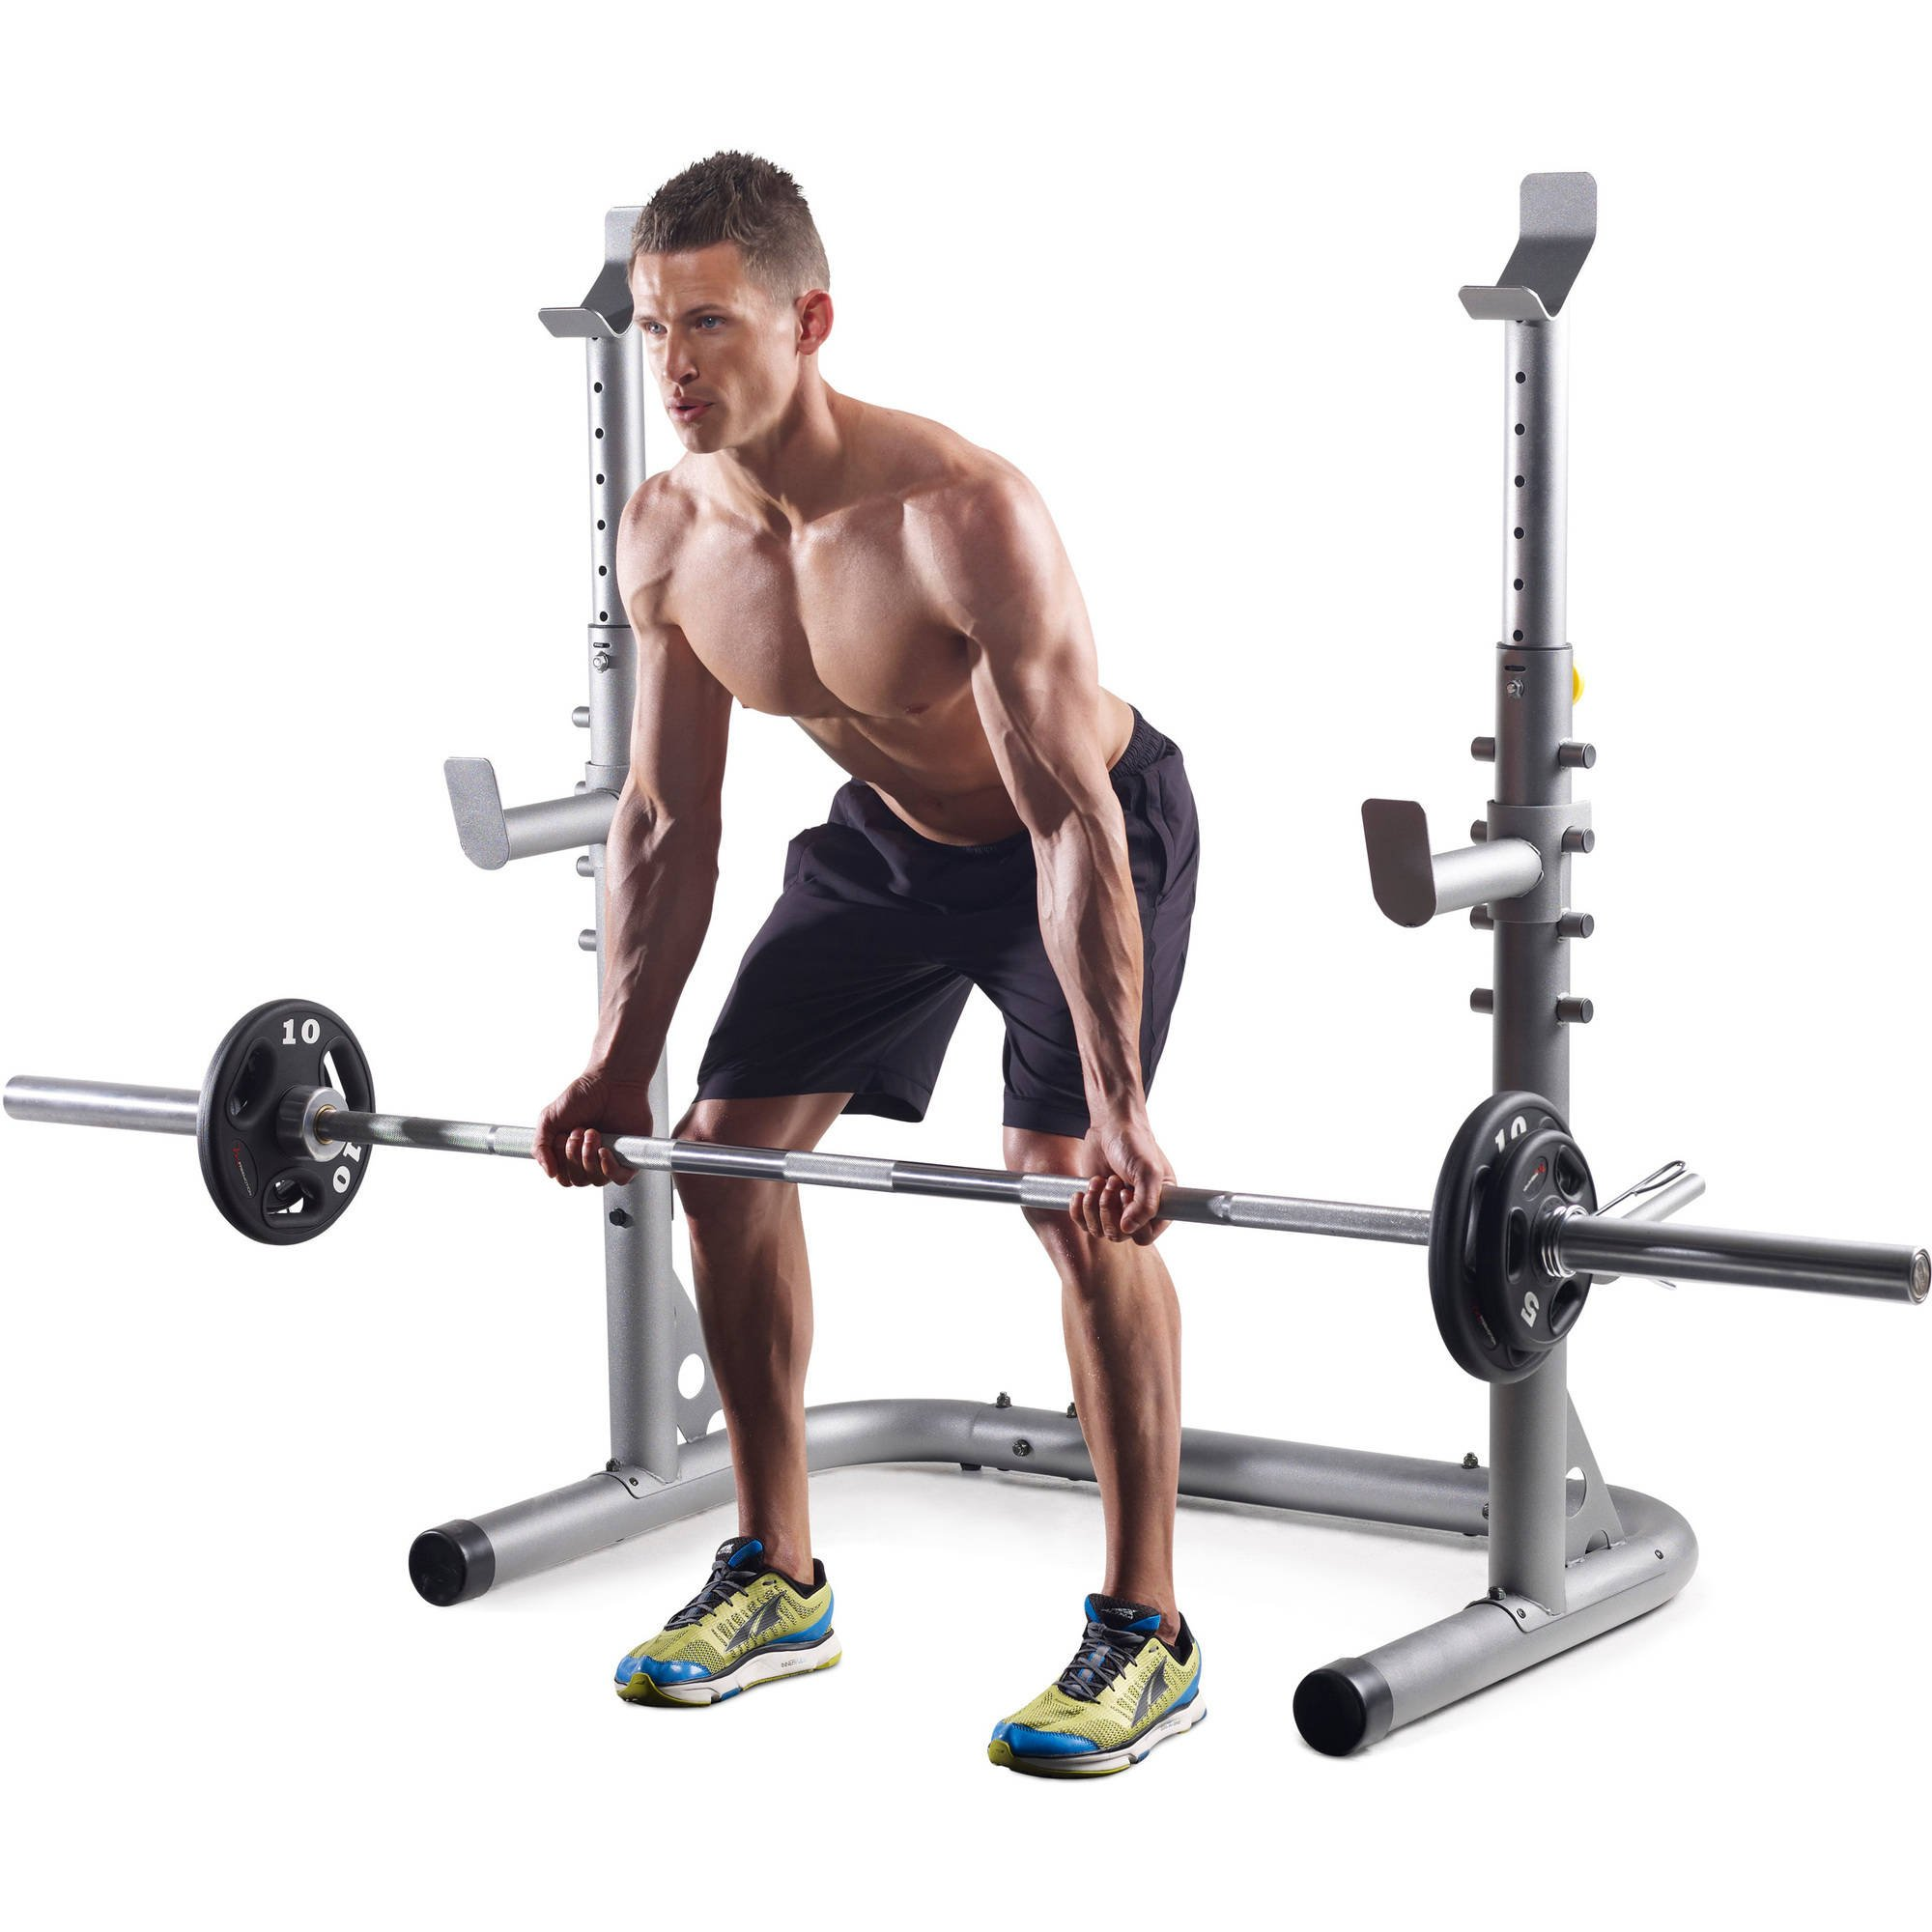 Golds Gym GGBE20615 XRS 20 Squat Rack by Golds Gym